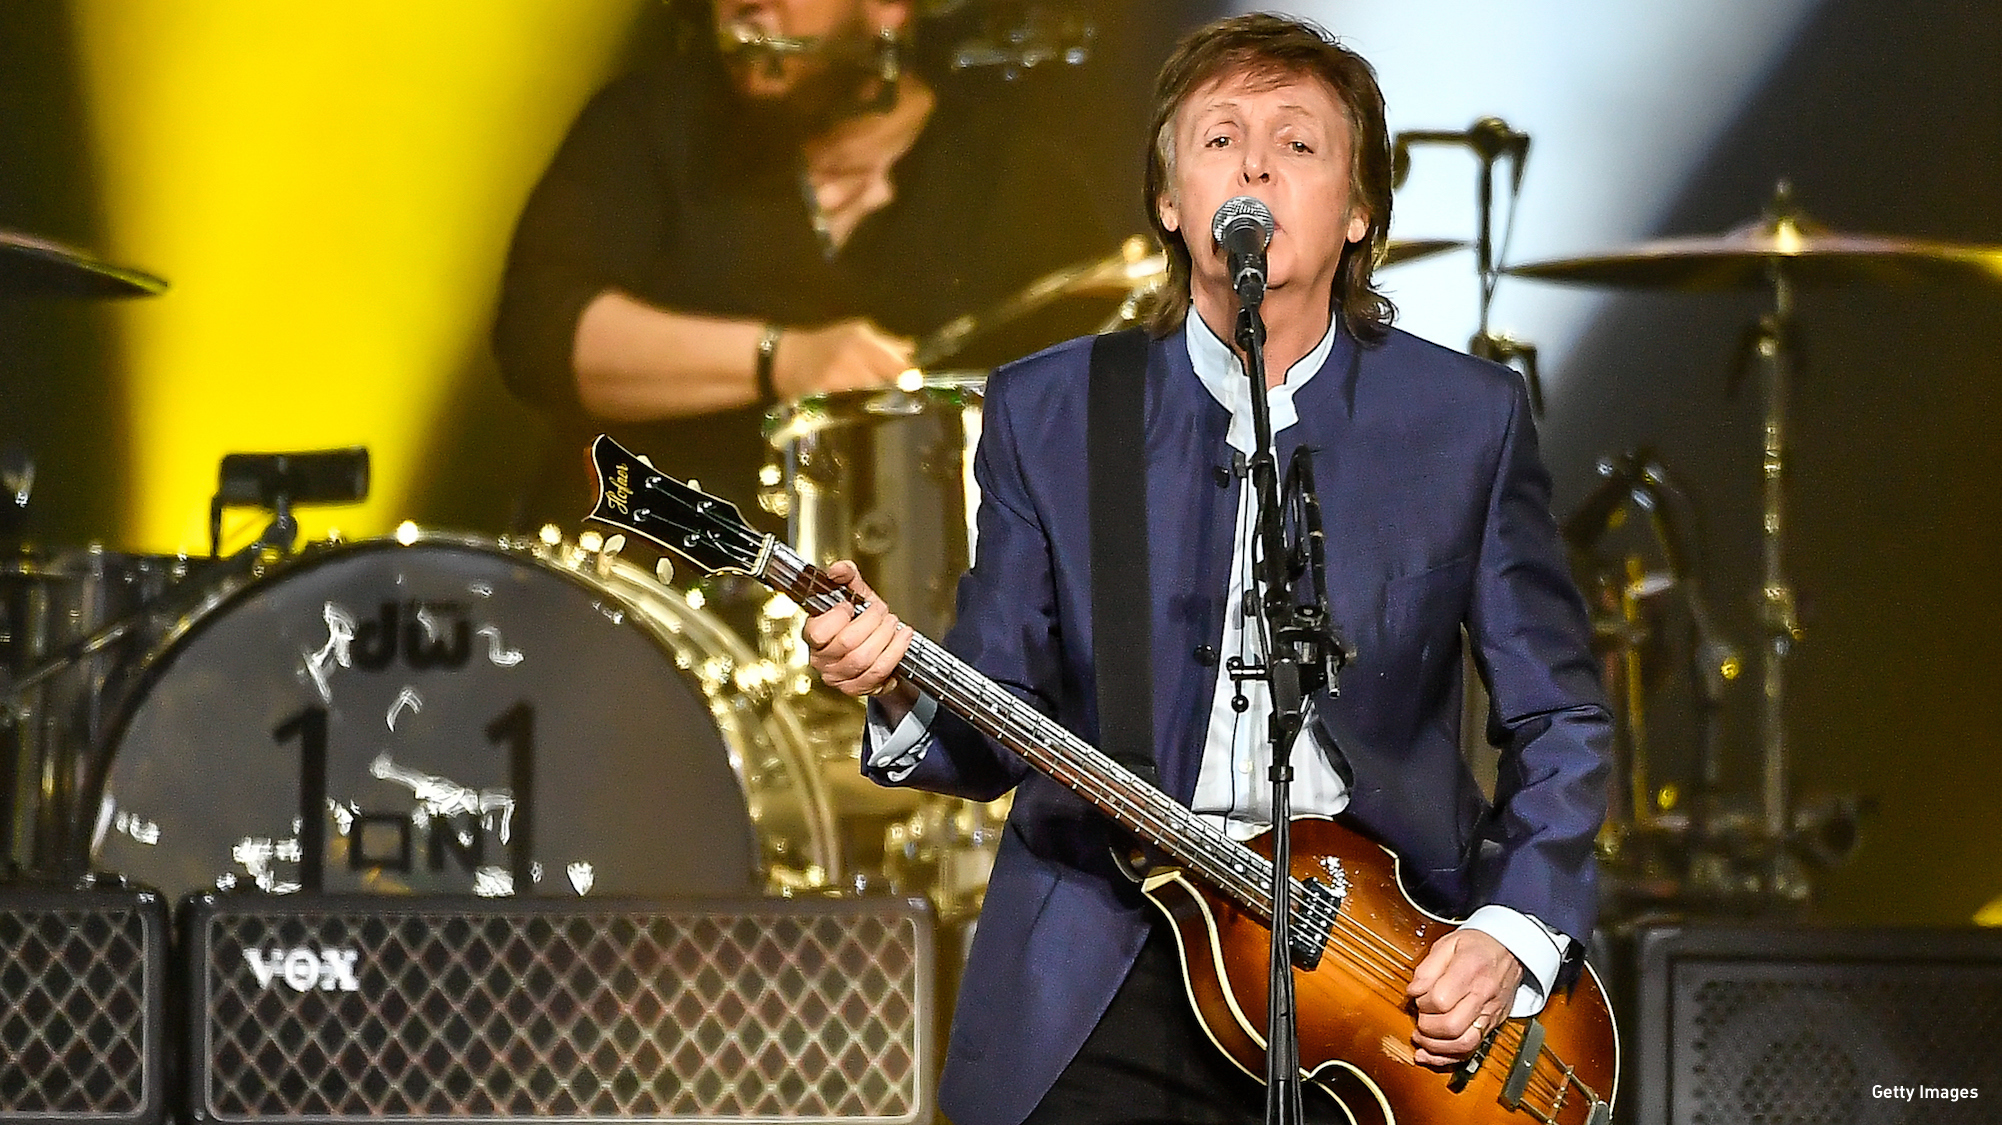 WATCH Paul McCartney Plays Beatles Classic For First Time Solo